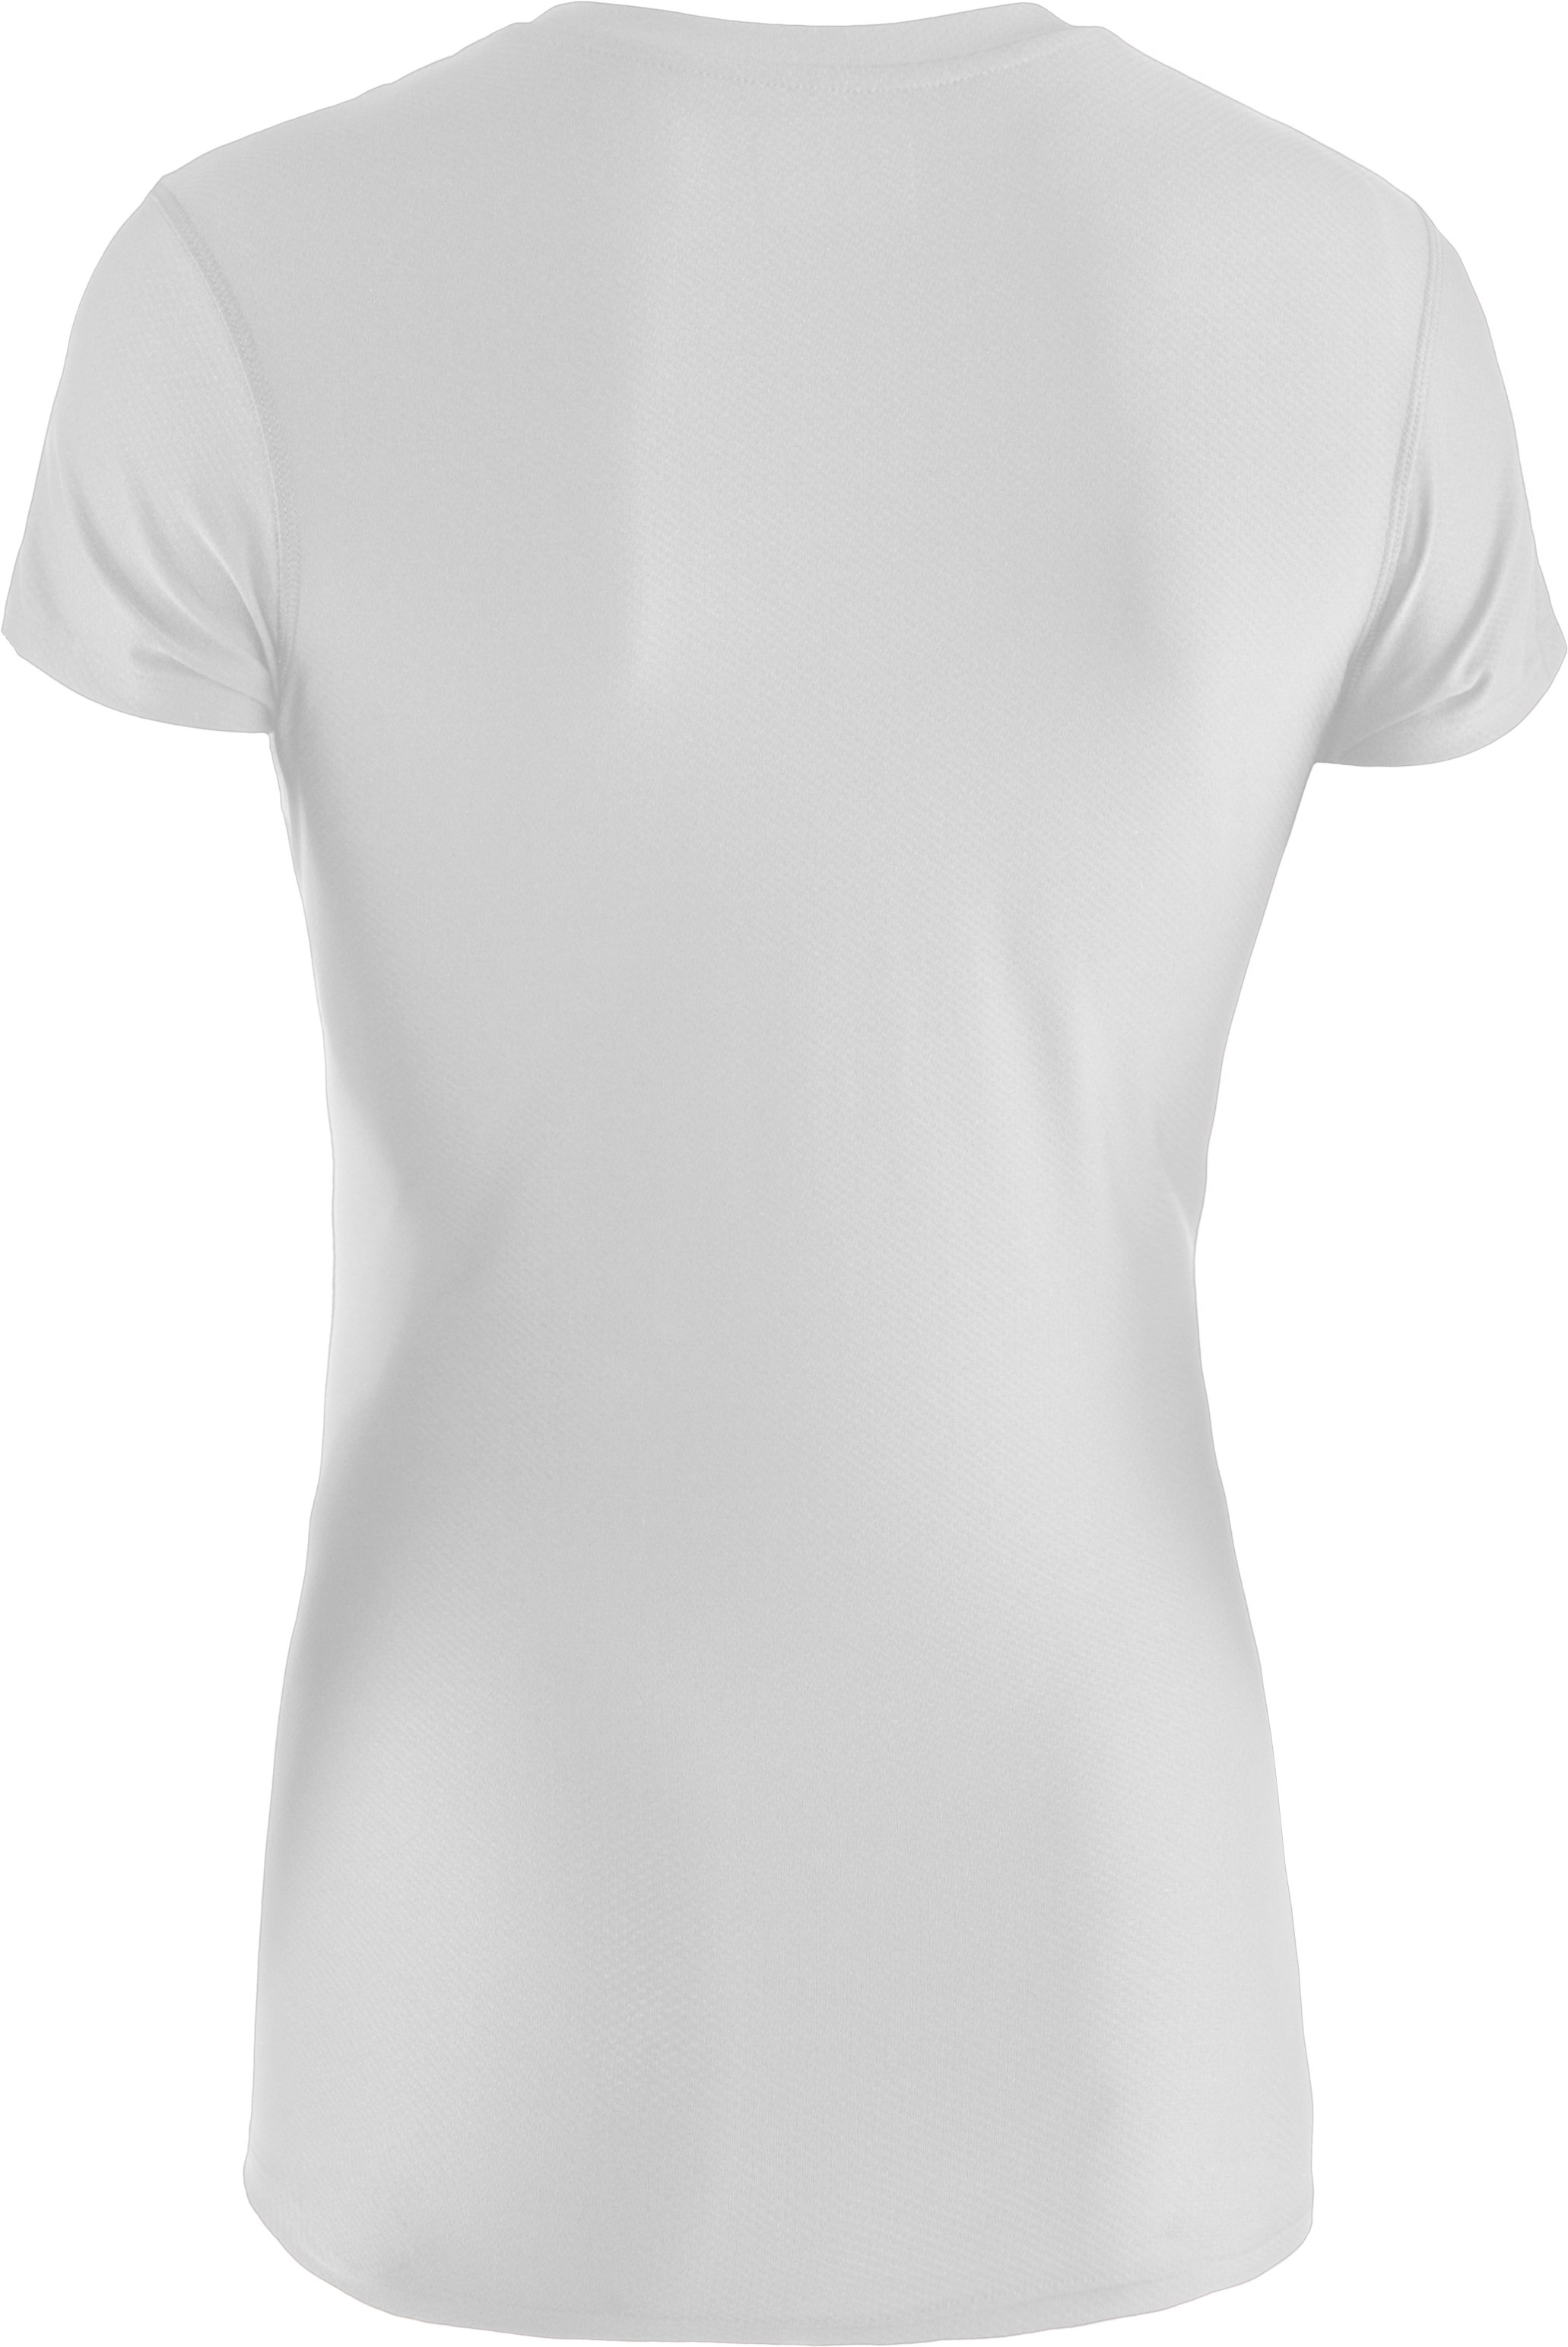 Women's UA Authentic T-Shirt, White